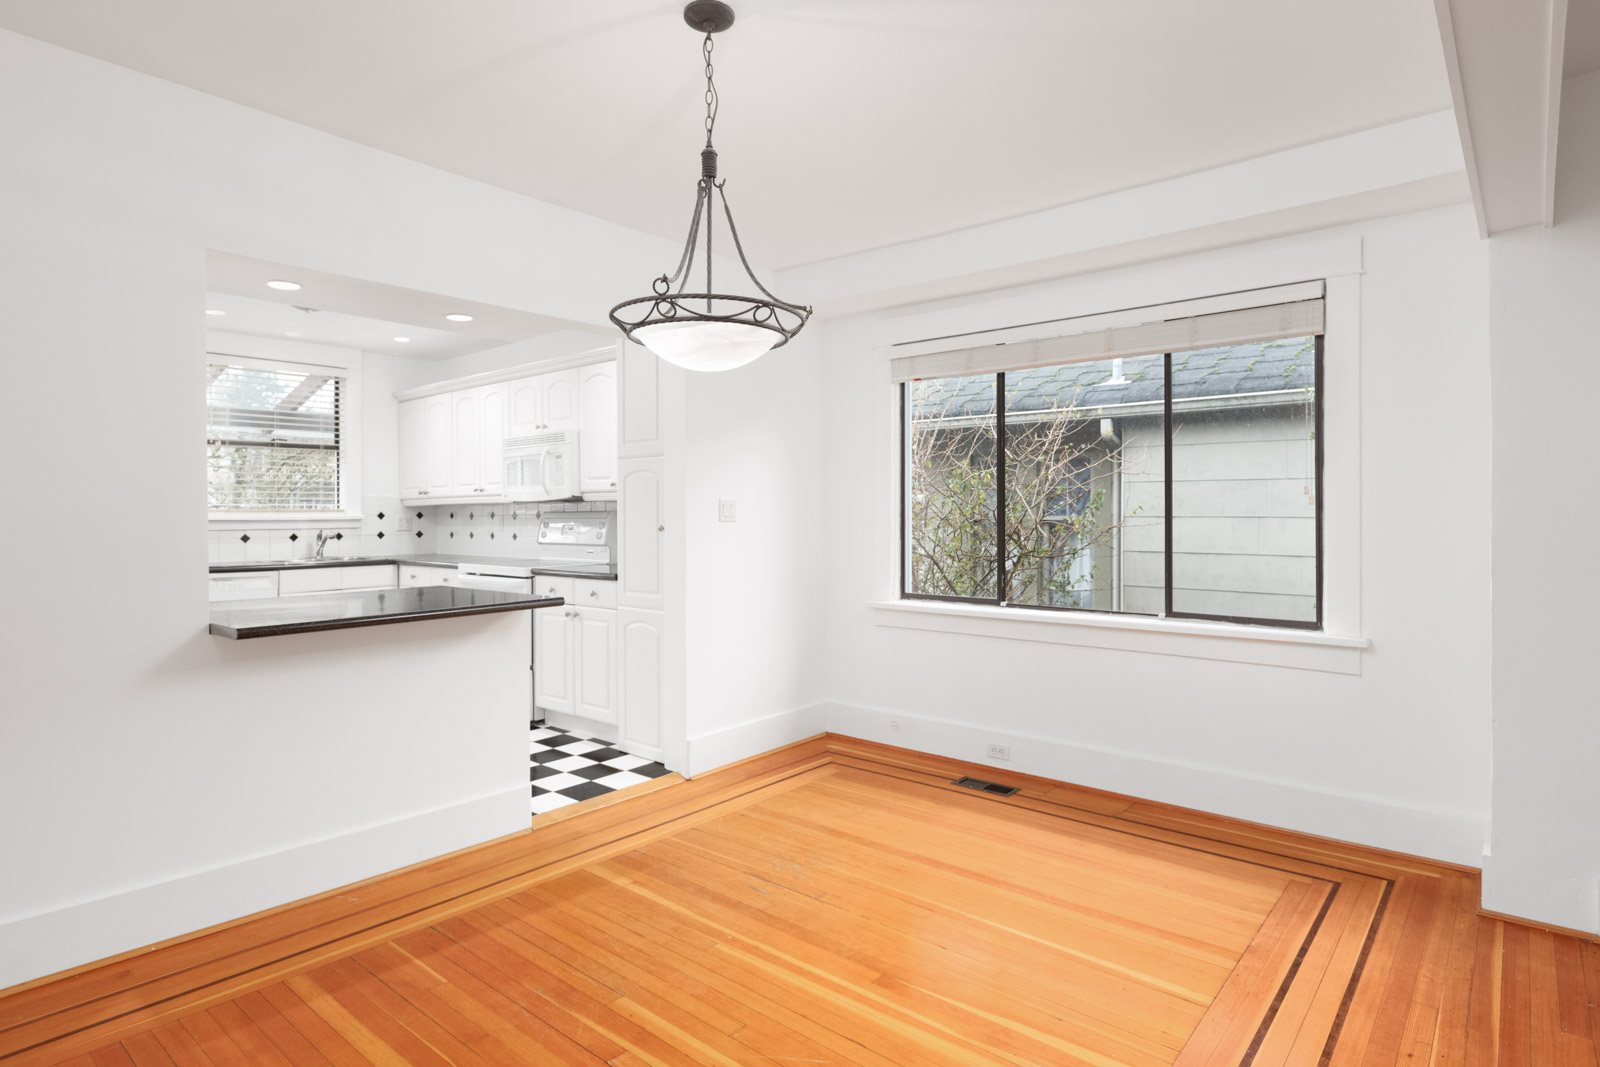 Open transition from kitchen to living area with sleek hardwood flooring and natural light